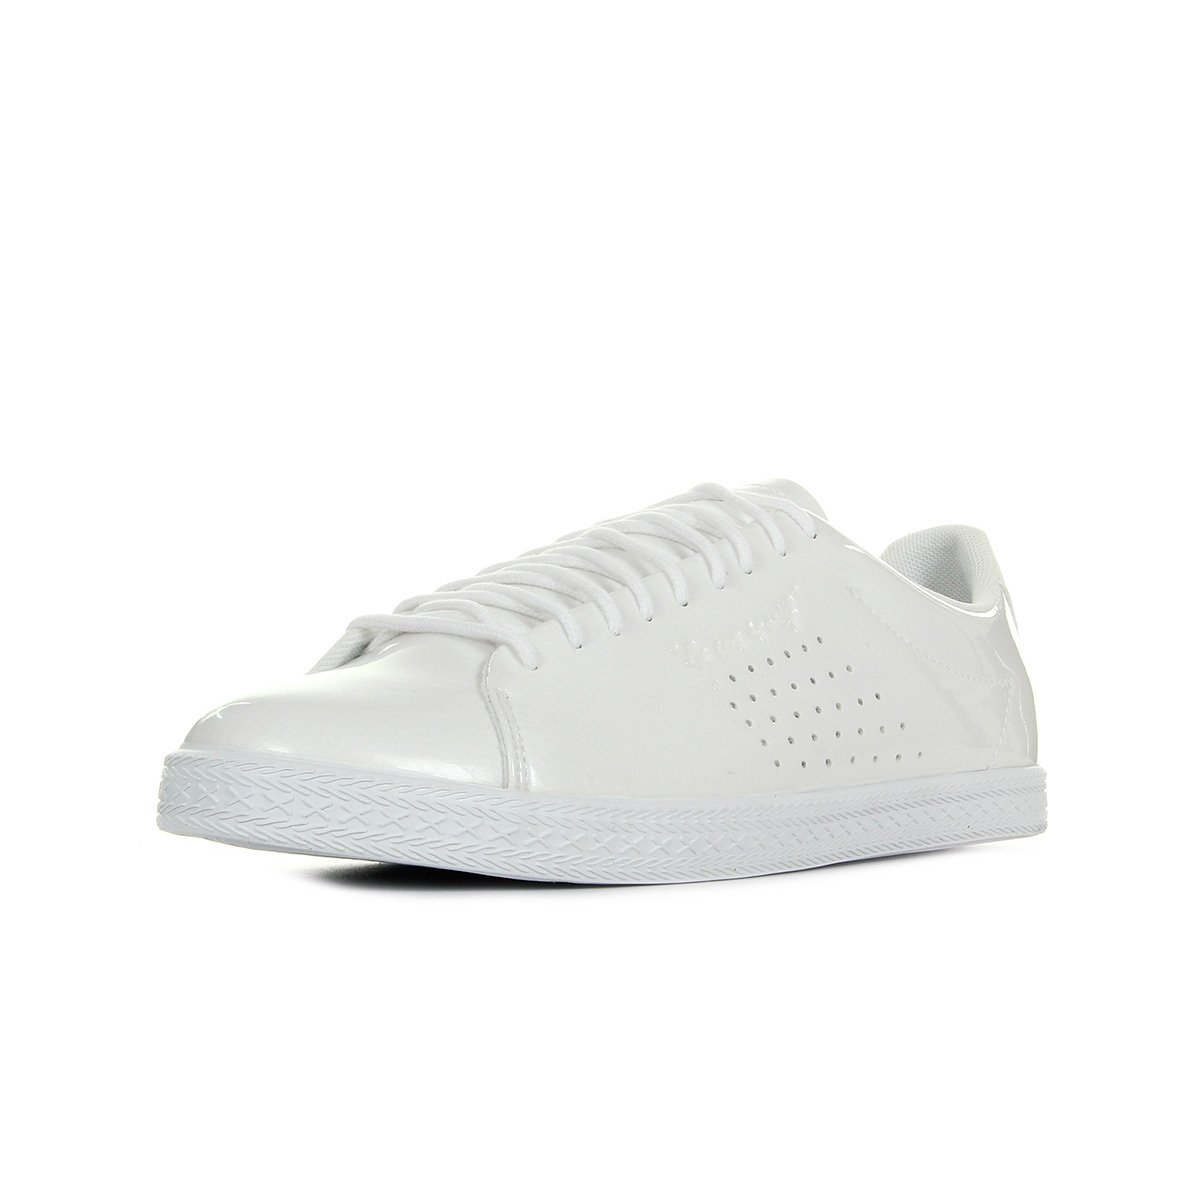 2ee70f716593 Le Coq Sportif Charline Coated S Leather 1810071